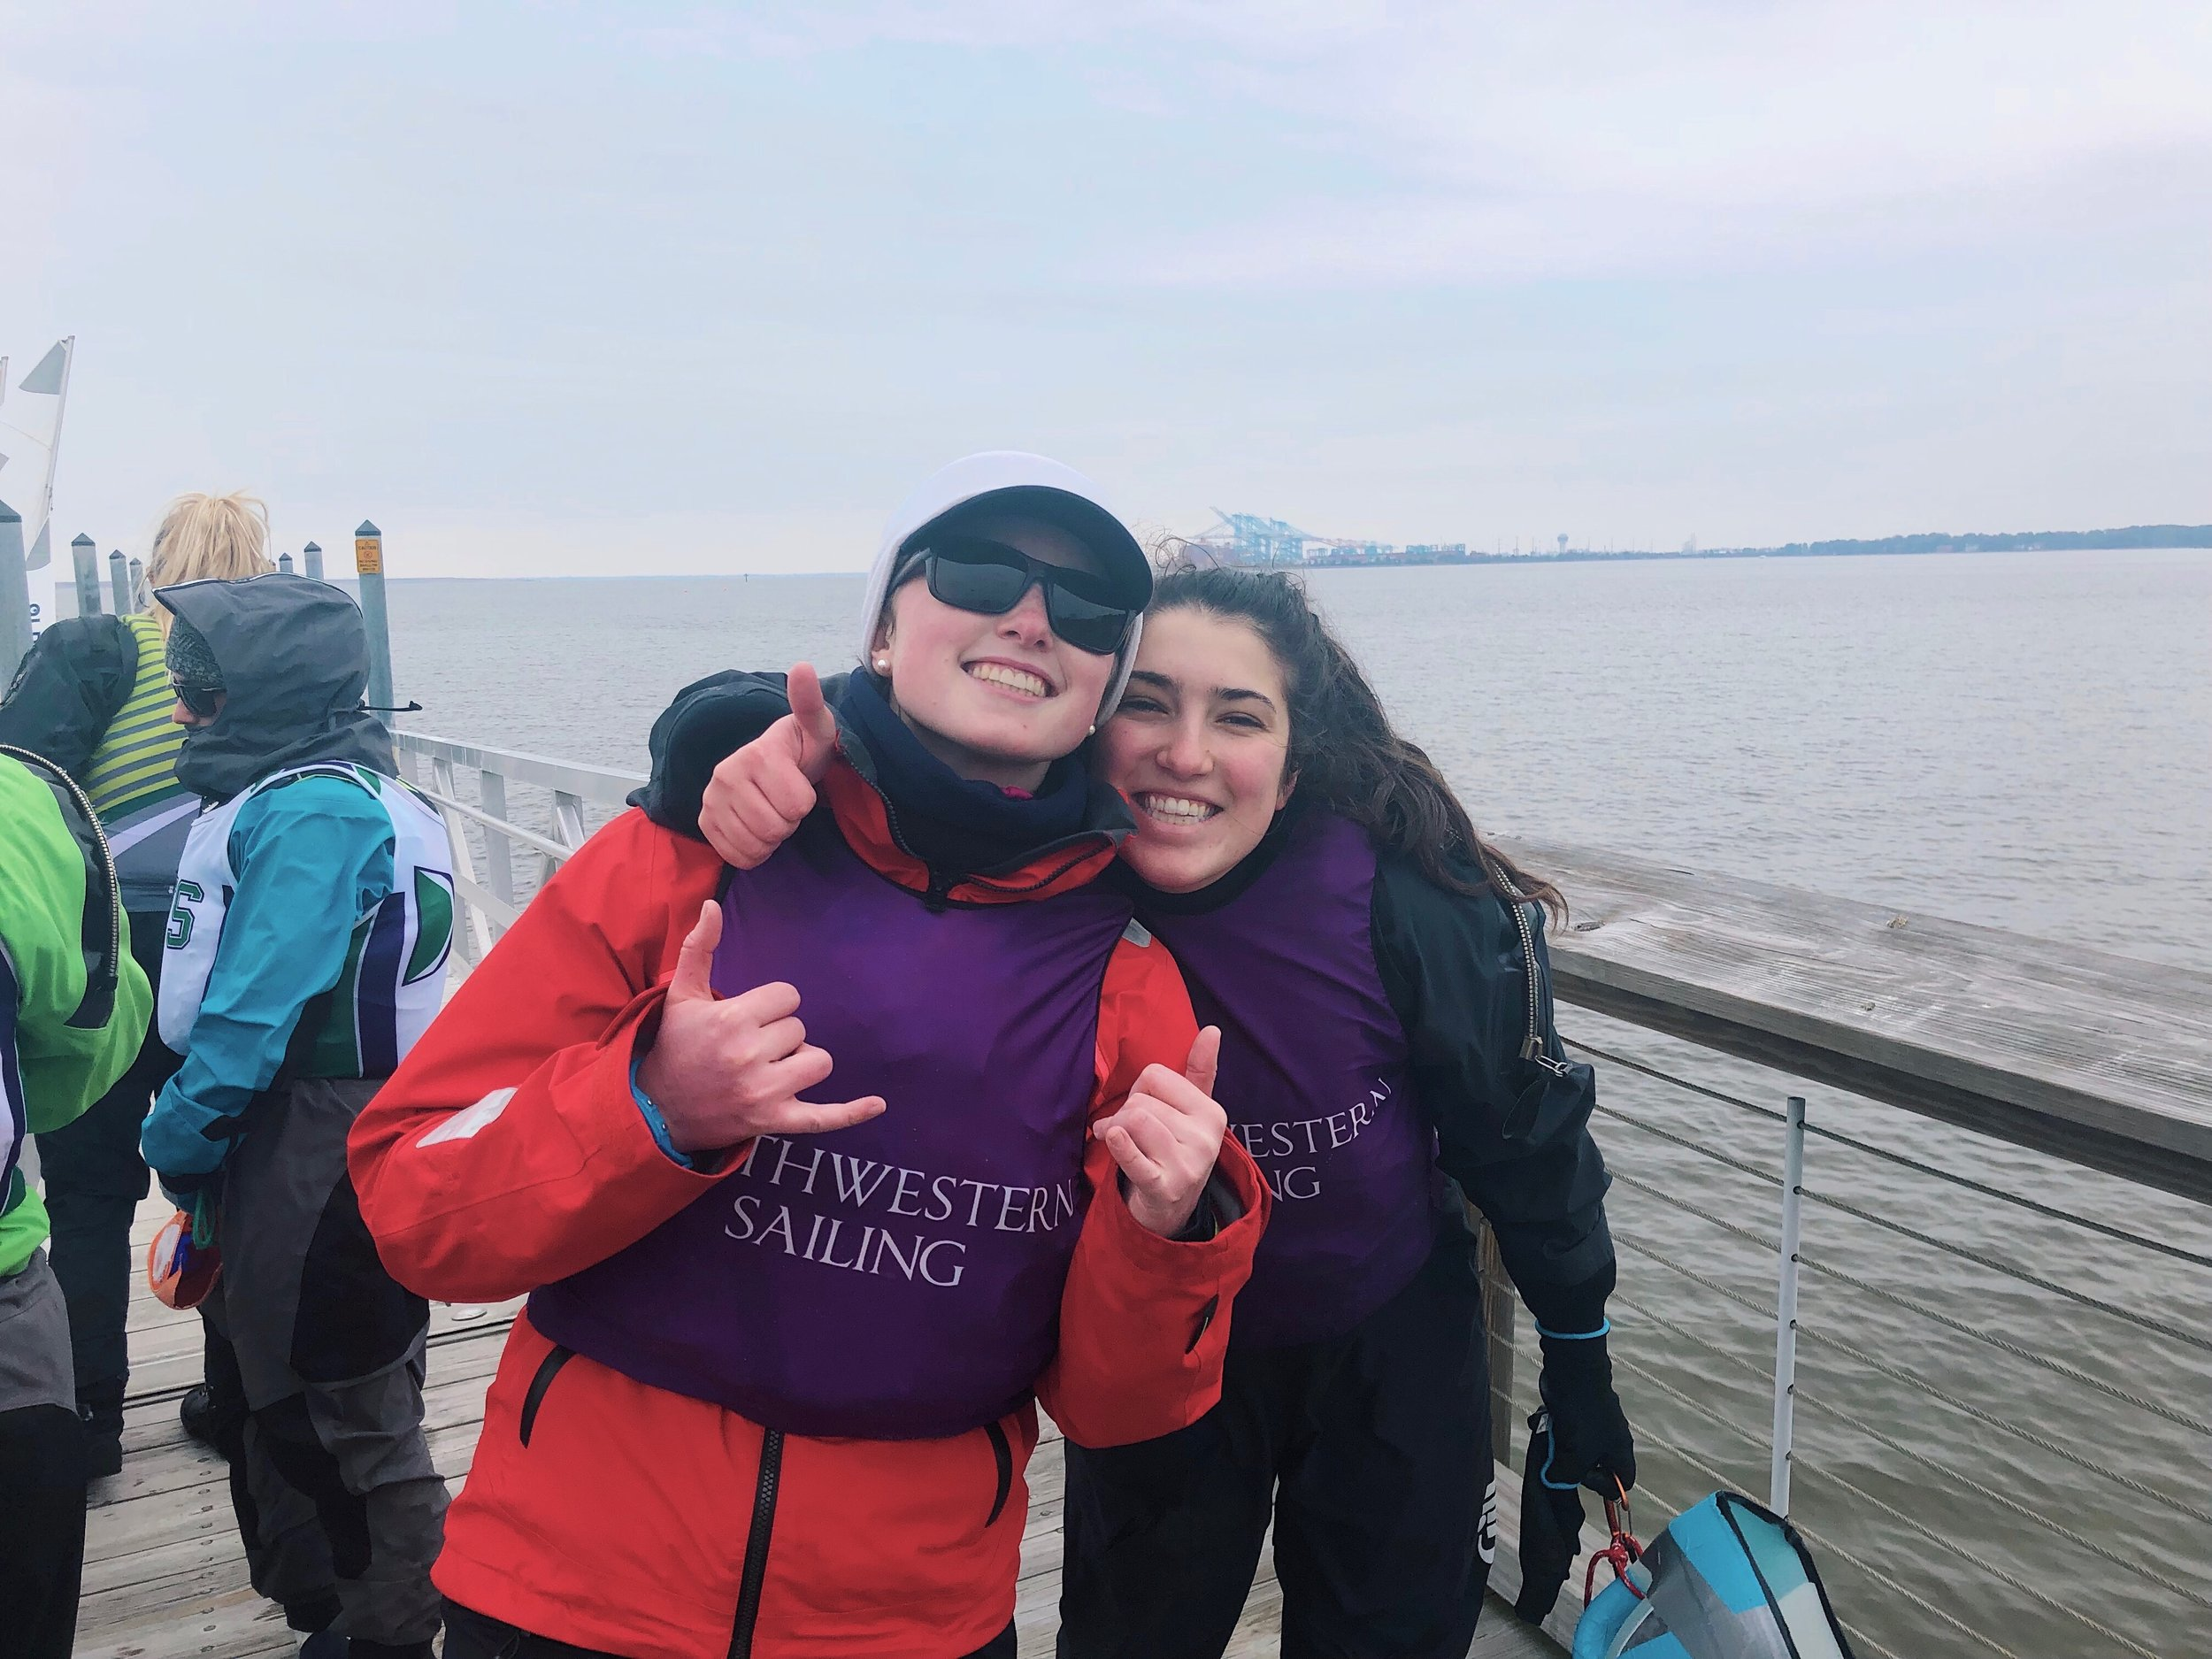 3/2-3/3 ODU Spring Women's - Sailing in Virginia was pretty challenging due to shifty conditions, but NUST ended with a strong 12th place finish.